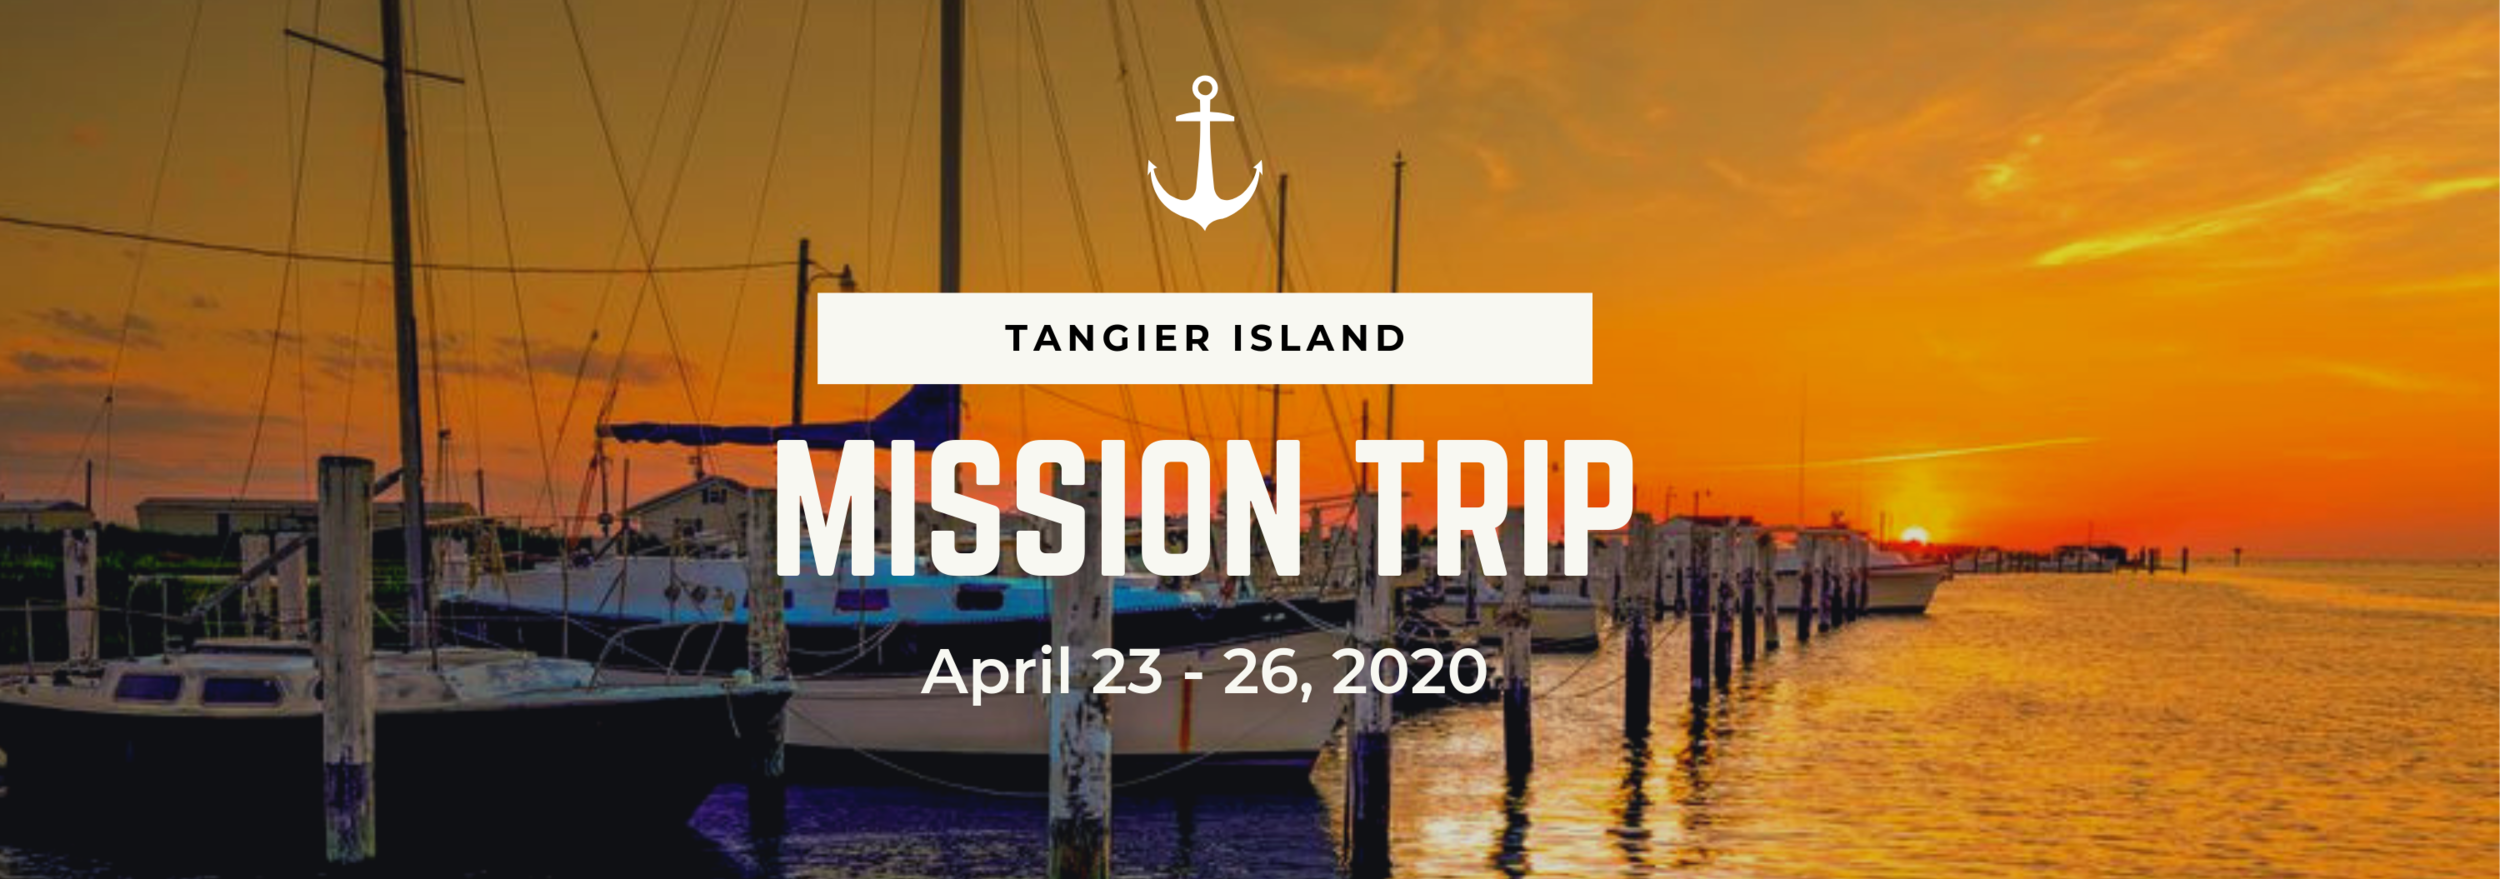 Copy of Tangier island-2.png